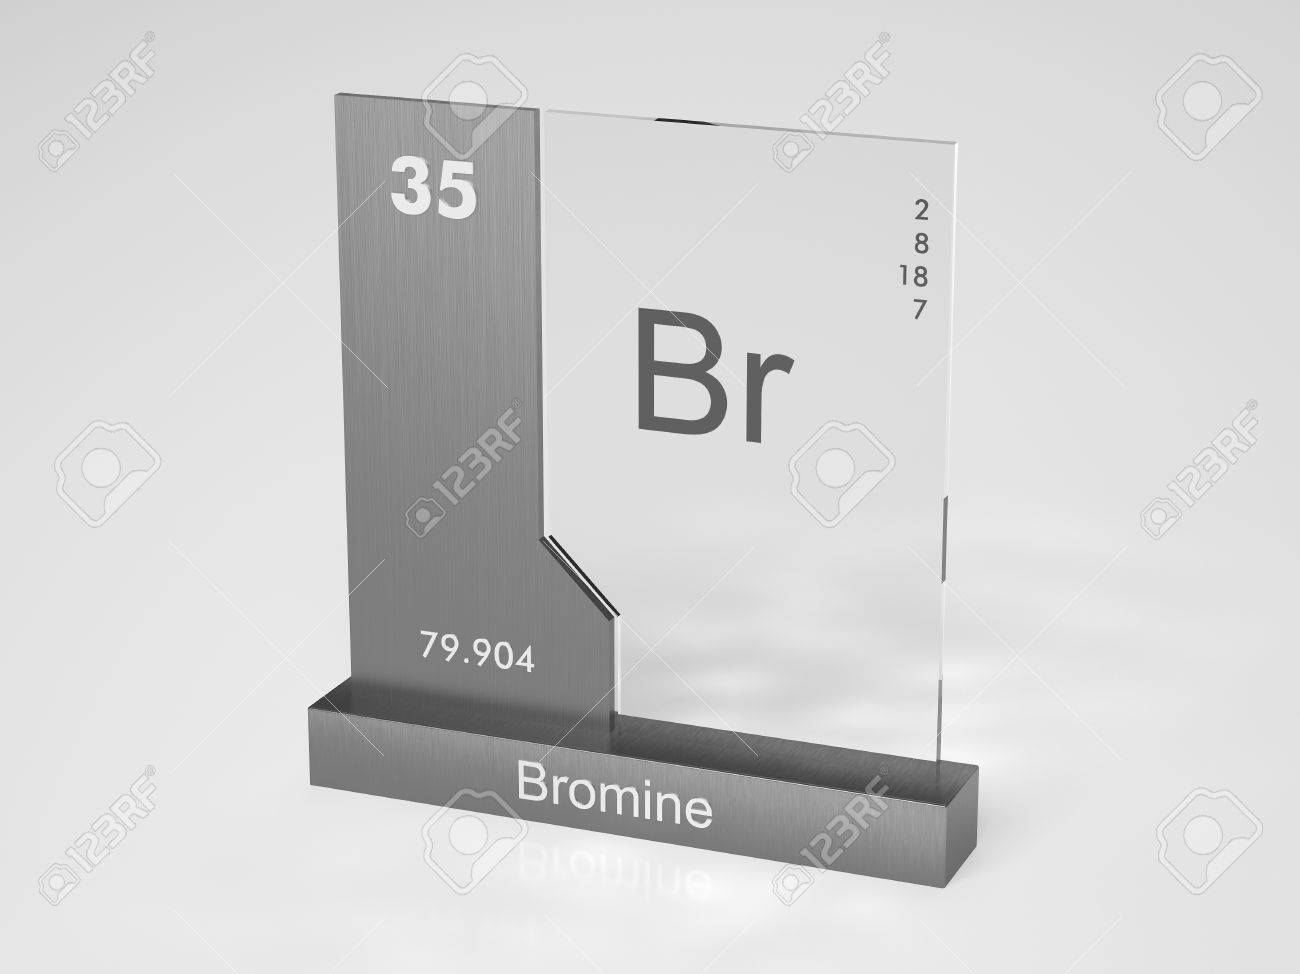 Bromine symbol br stock photo picture and royalty free image bromine symbol br stock photo 10230178 biocorpaavc